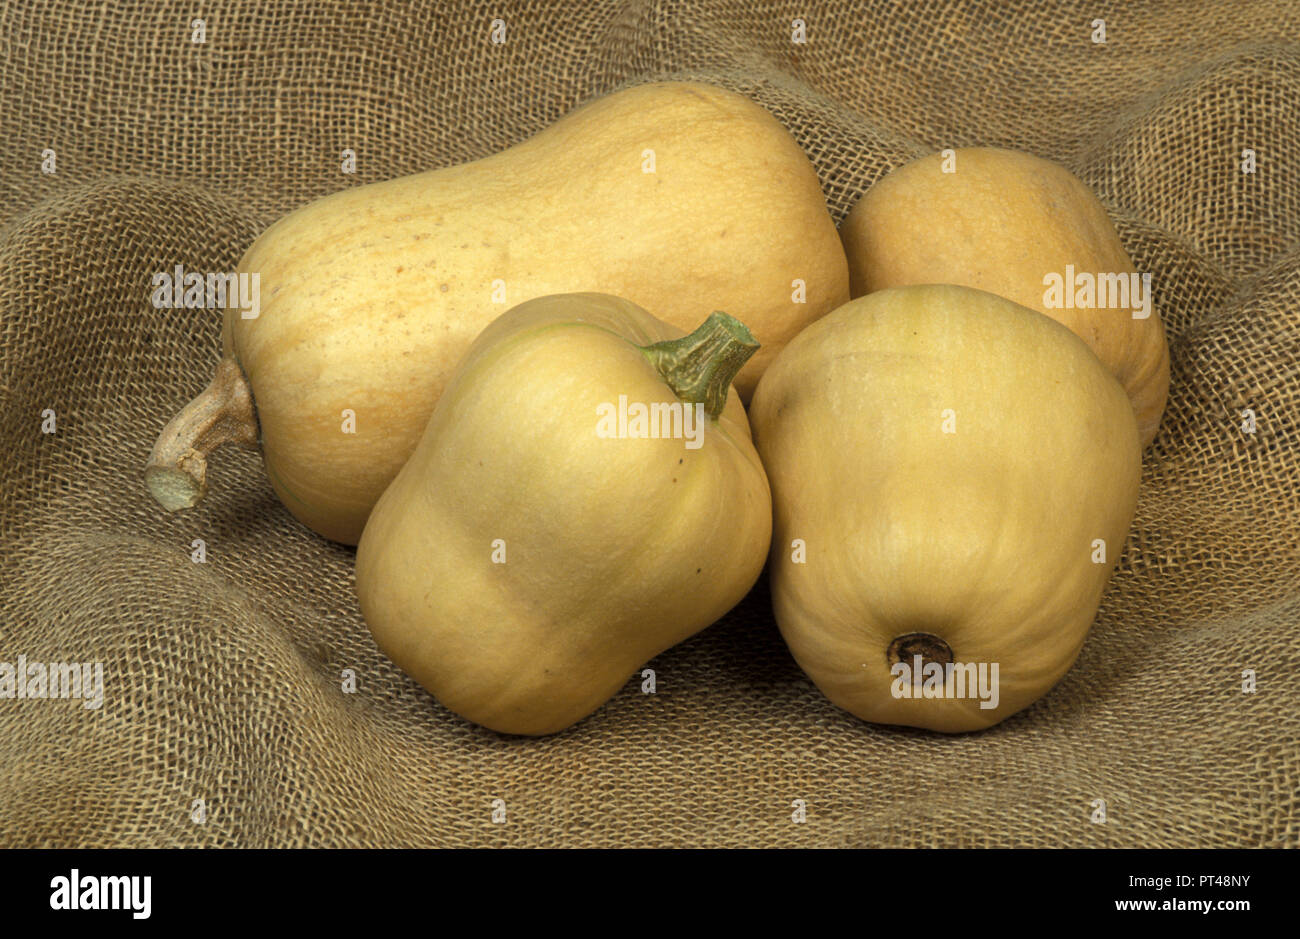 HARVESTED BUTTERNUT PUMPKINS (CUCURBITA MOSCHATA) - Stock Image